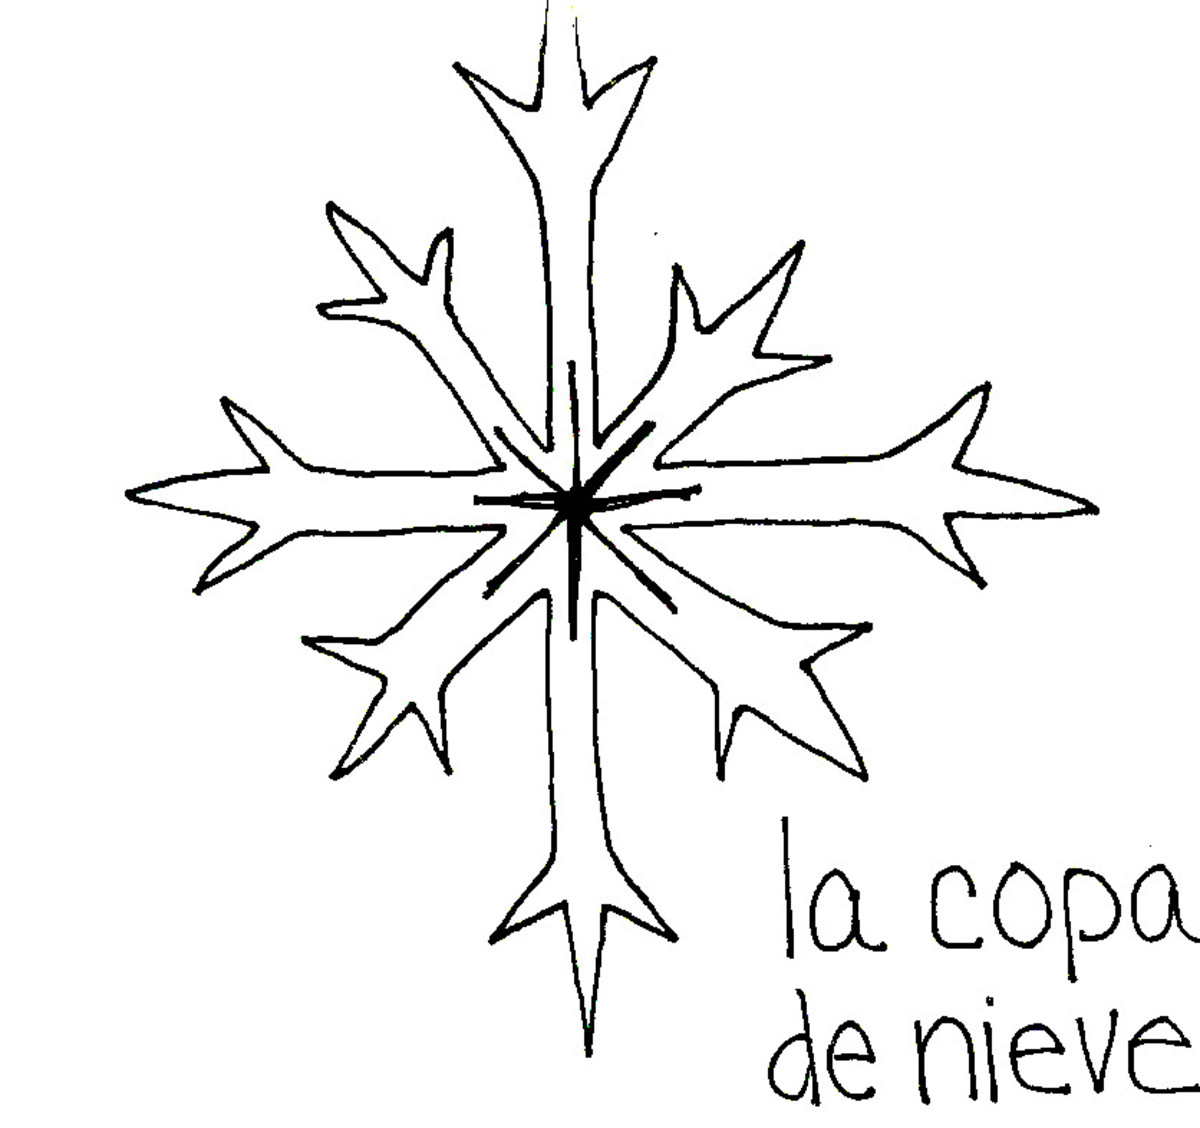 Snowflake in Spanish